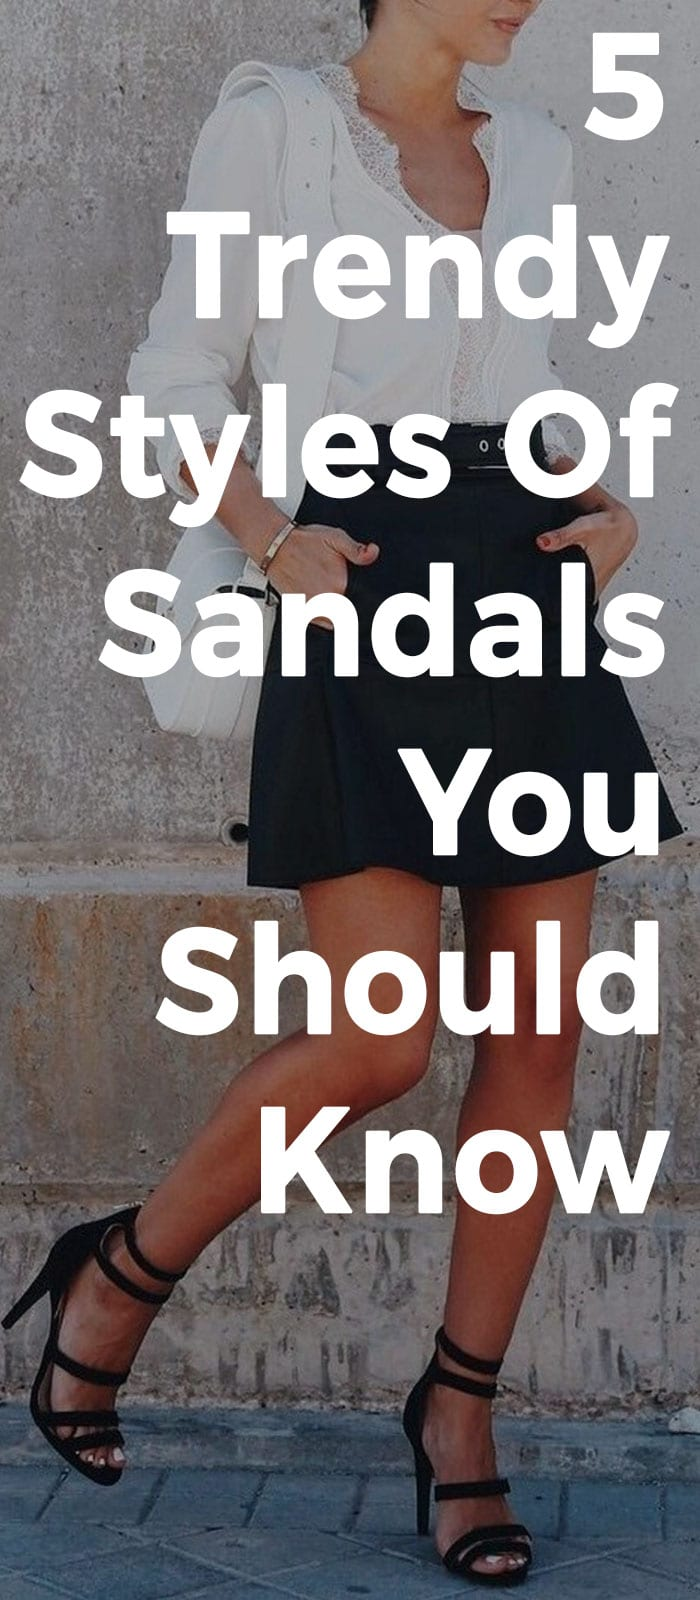 5 Trendy Styles Of Sandals You Should Know.